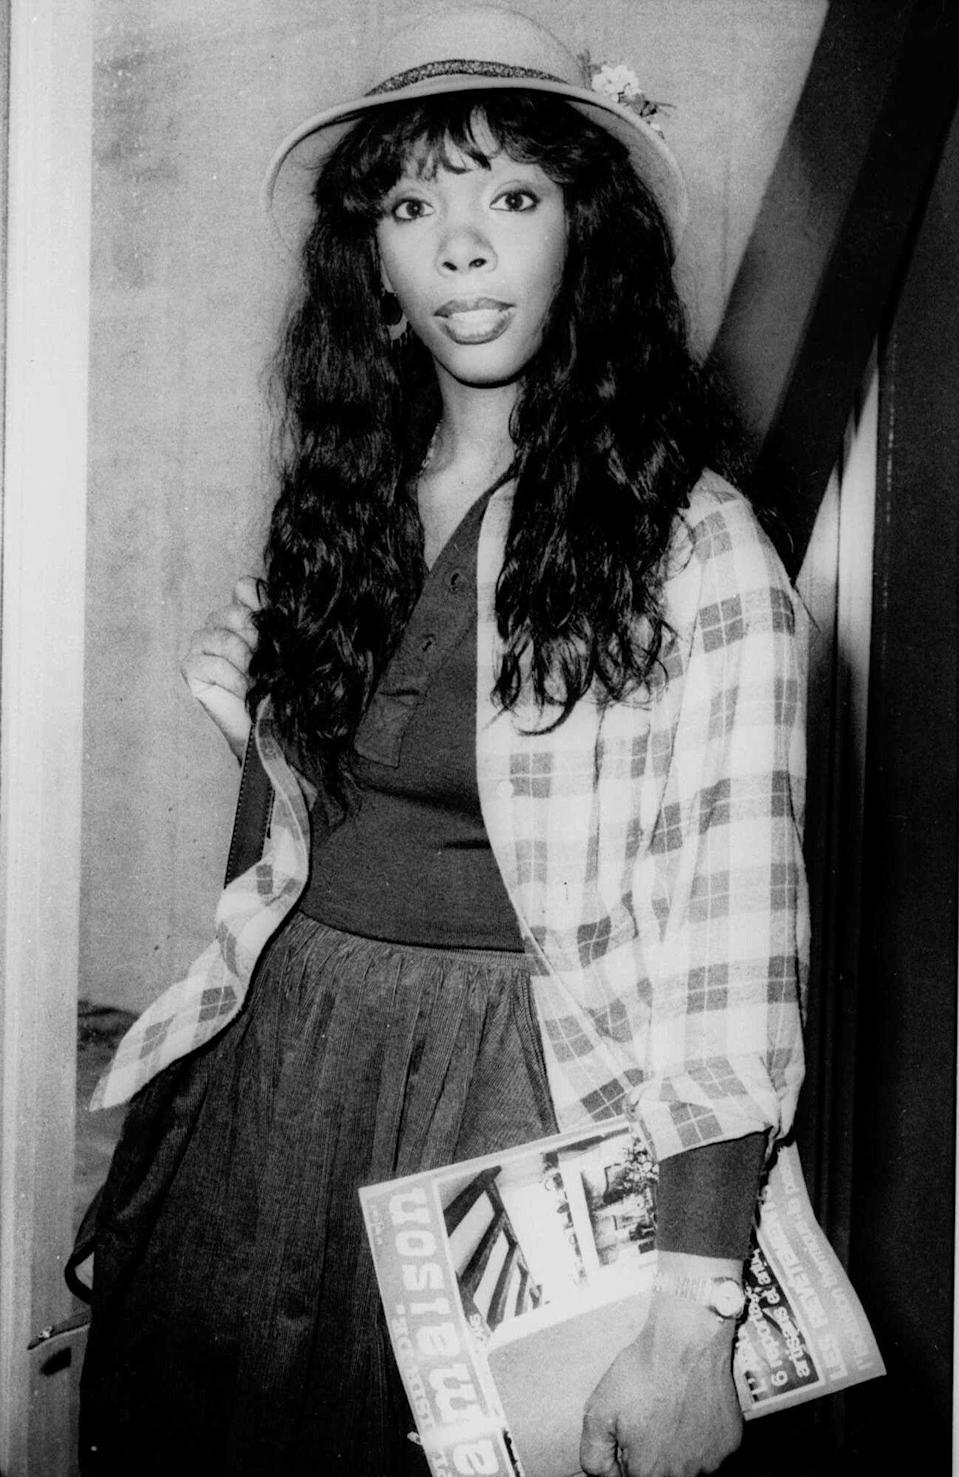 """FILE - In this Oct. 21, 1977 file photo, Donna Summer, 27, arrives at Heathrow Airport from Paris. Summer, the Queen of Disco who ruled the dance floors with anthems like """"Last Dance,"""" """"Love to Love You Baby"""" and """"Bad Girl,"""" has died. Her family released a statement, saying Summer died Thursday, May 17, 2012. She was 63. (AP Photo/File)"""